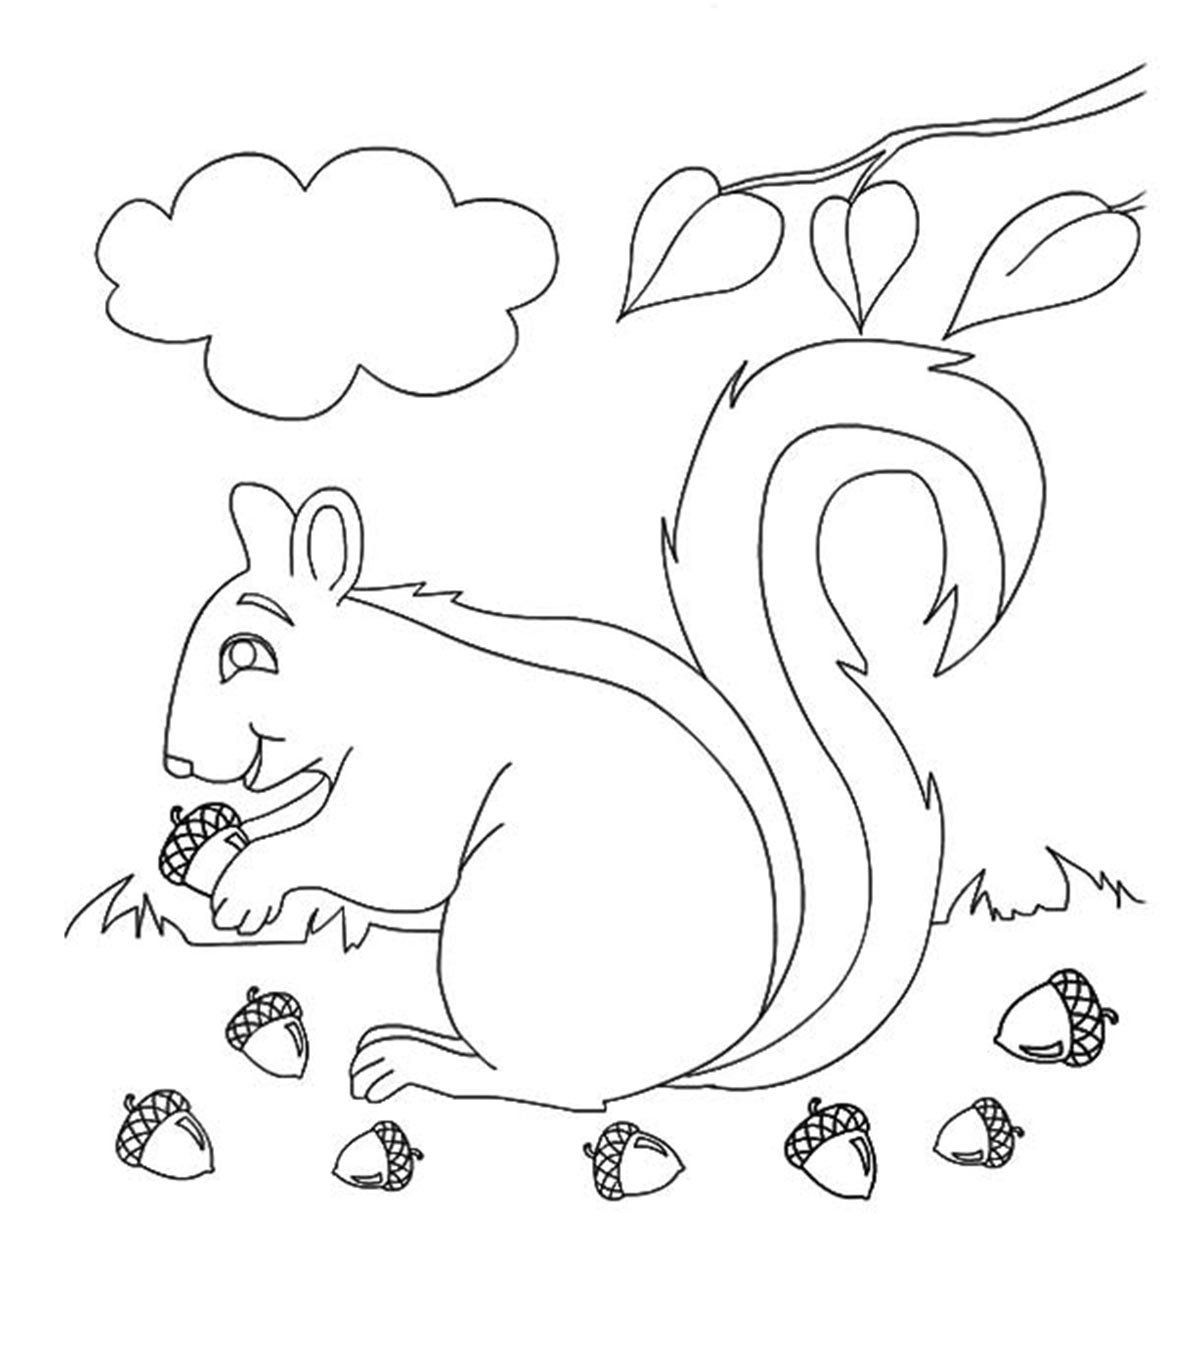 42++ Disney thanksgiving coloring pages pdf ideas in 2021